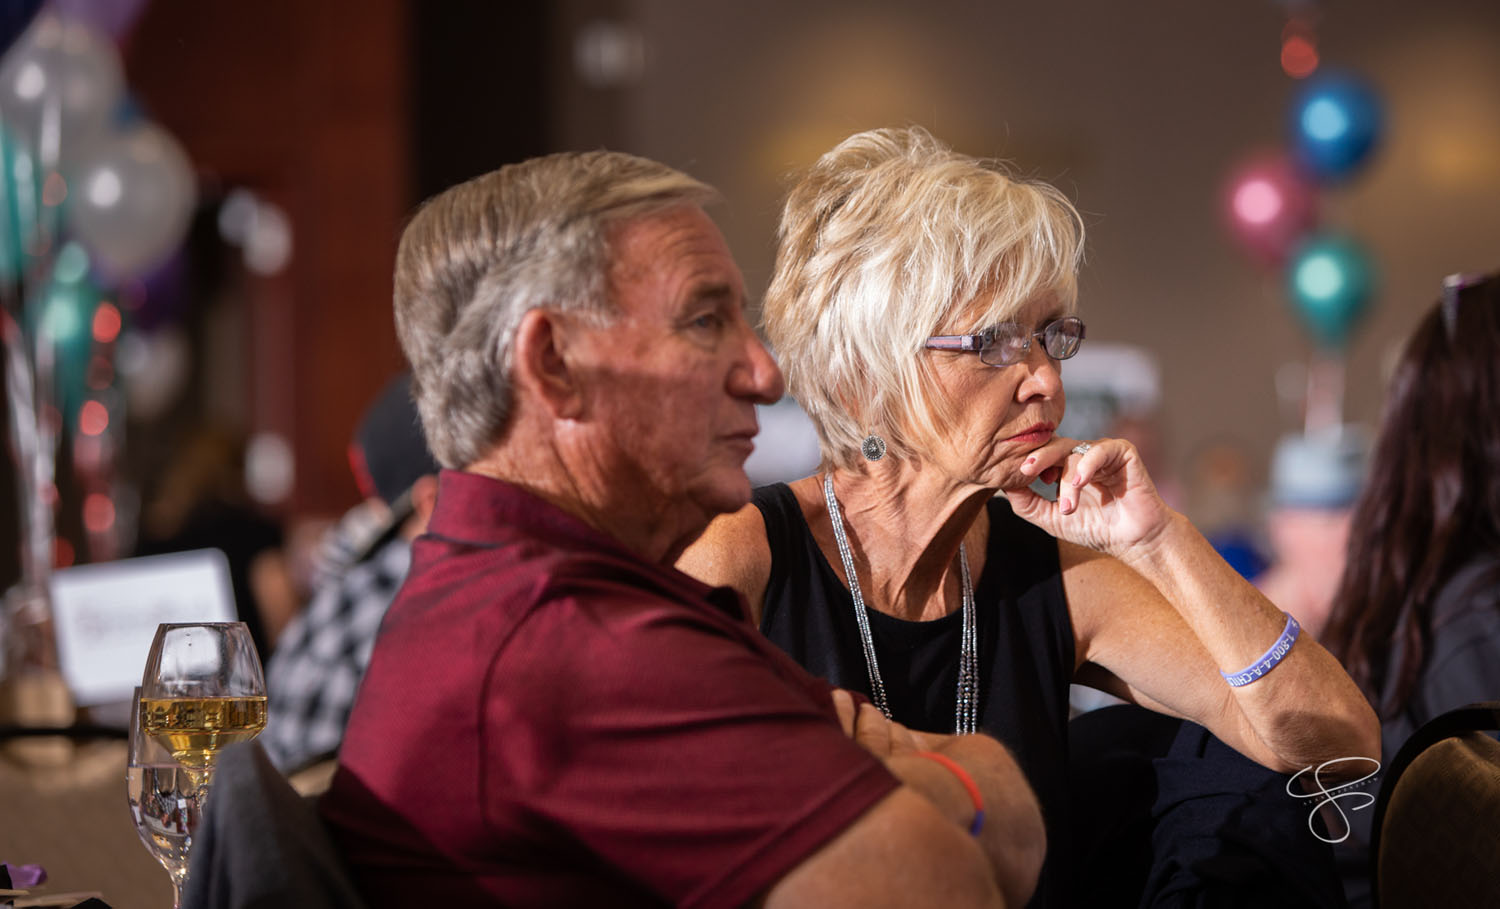 The Flagstaff community came out to support Childhelp Flagstaff during the annual 25 Men Who Think They Can Cook event on June 22, 2019 at the High Country Conference Center. Photo by Sean Openshaw / www.SeanOpenshaw.com